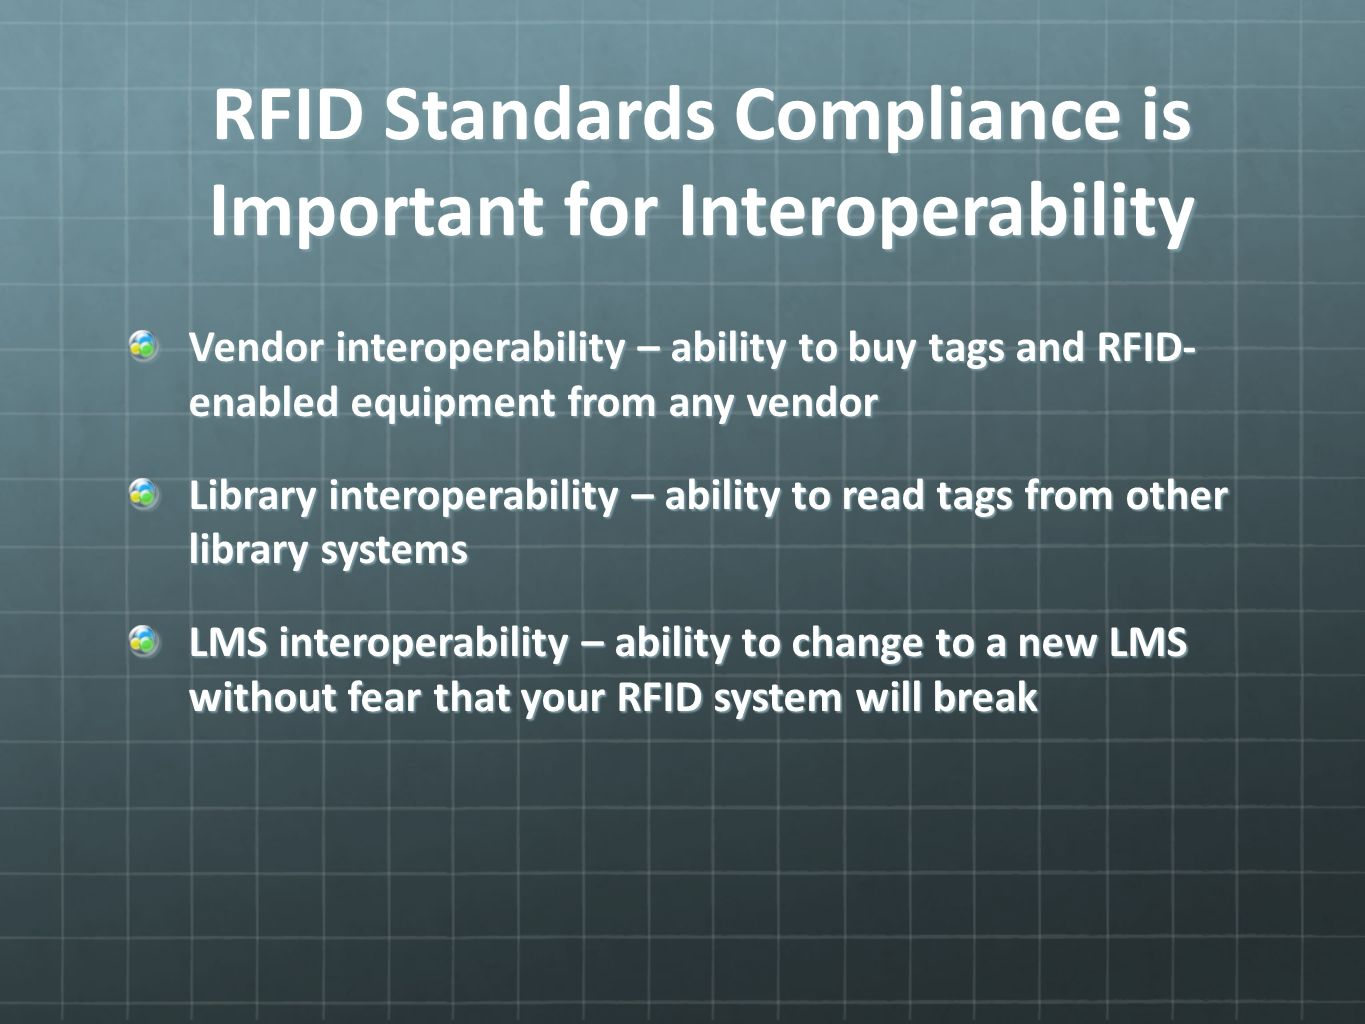 RFID Standards Compliance is Important for Interoperability Vendor interoperability – ability to buy tags and RFID- enabled equipment from any vendor Library interoperability – ability to read tags from other library systems LMS interoperability – ability to change to a new LMS without fear that your RFID system will break